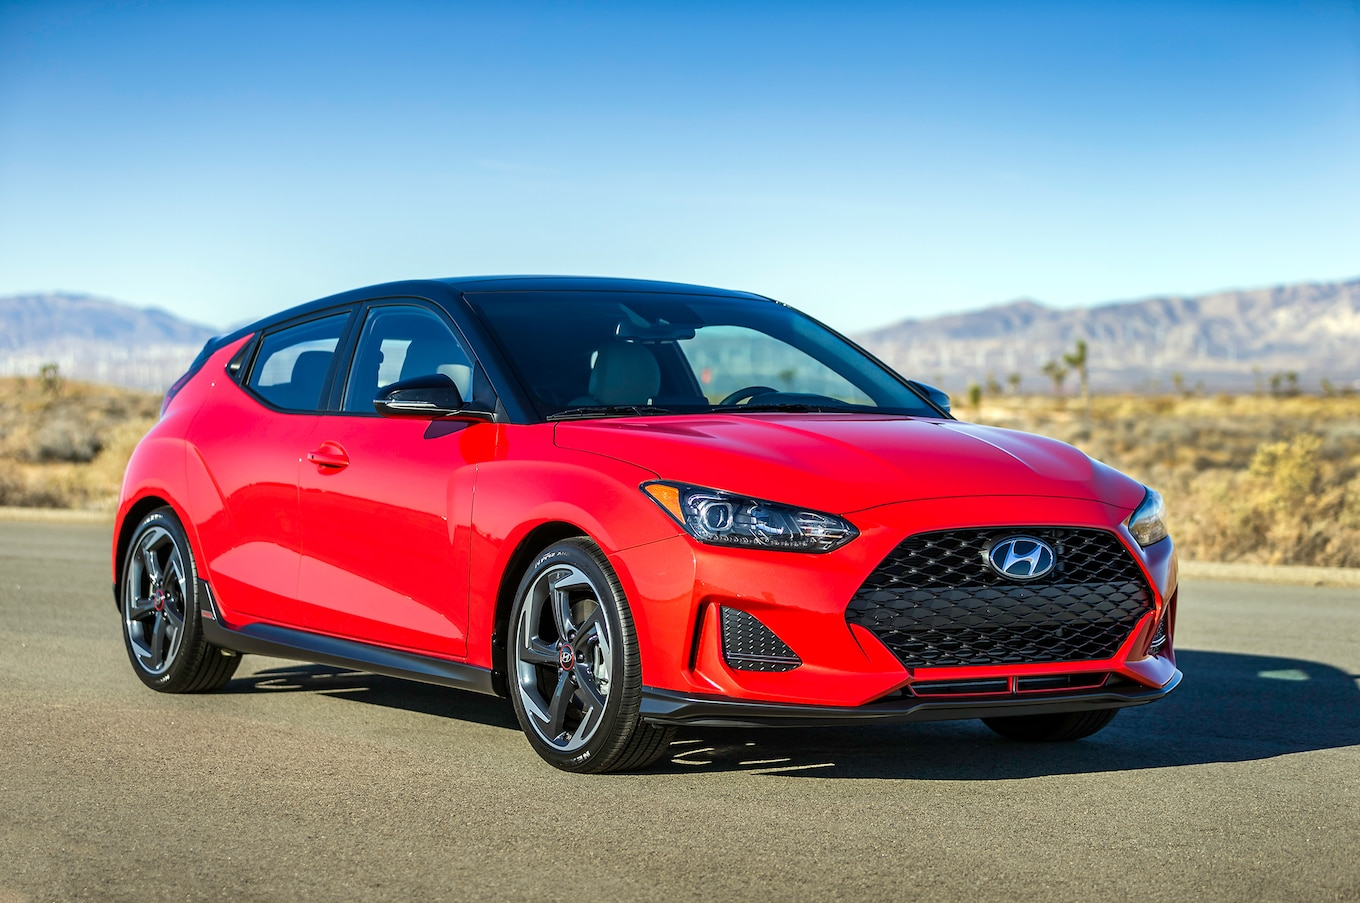 16 All New 2019 Hyundai Veloster Turbo Release Date